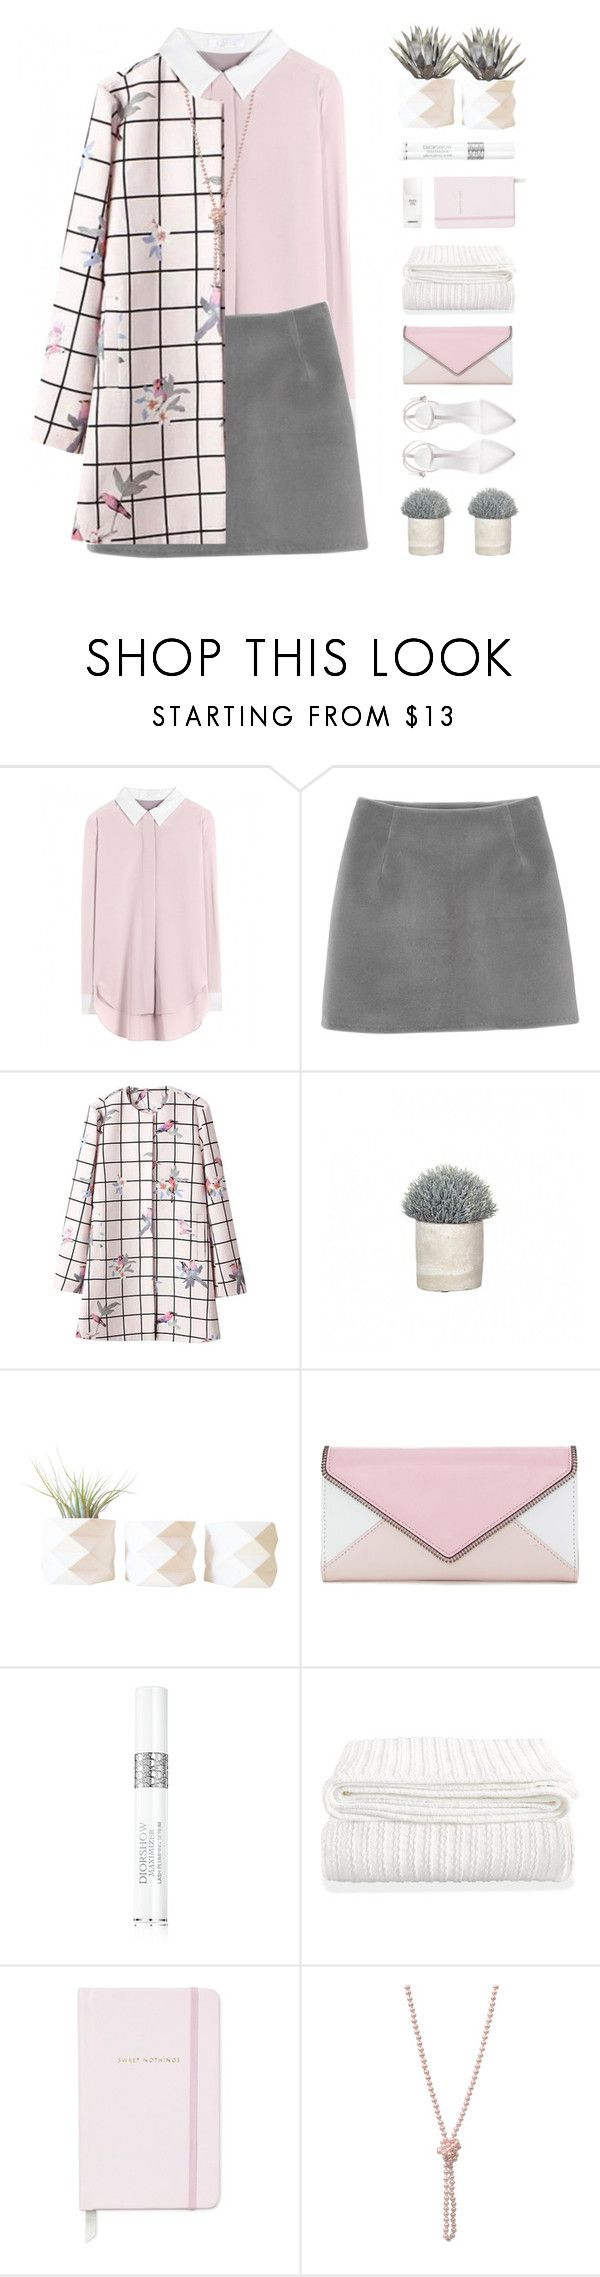 """""""Crushed Petals"""" by kearalachelle ❤ liked on Polyvore featuring Chloé, Monki, Pomax, Rebecca Minkoff, Christian Dior, Chanel, Kate Spade and Zara"""